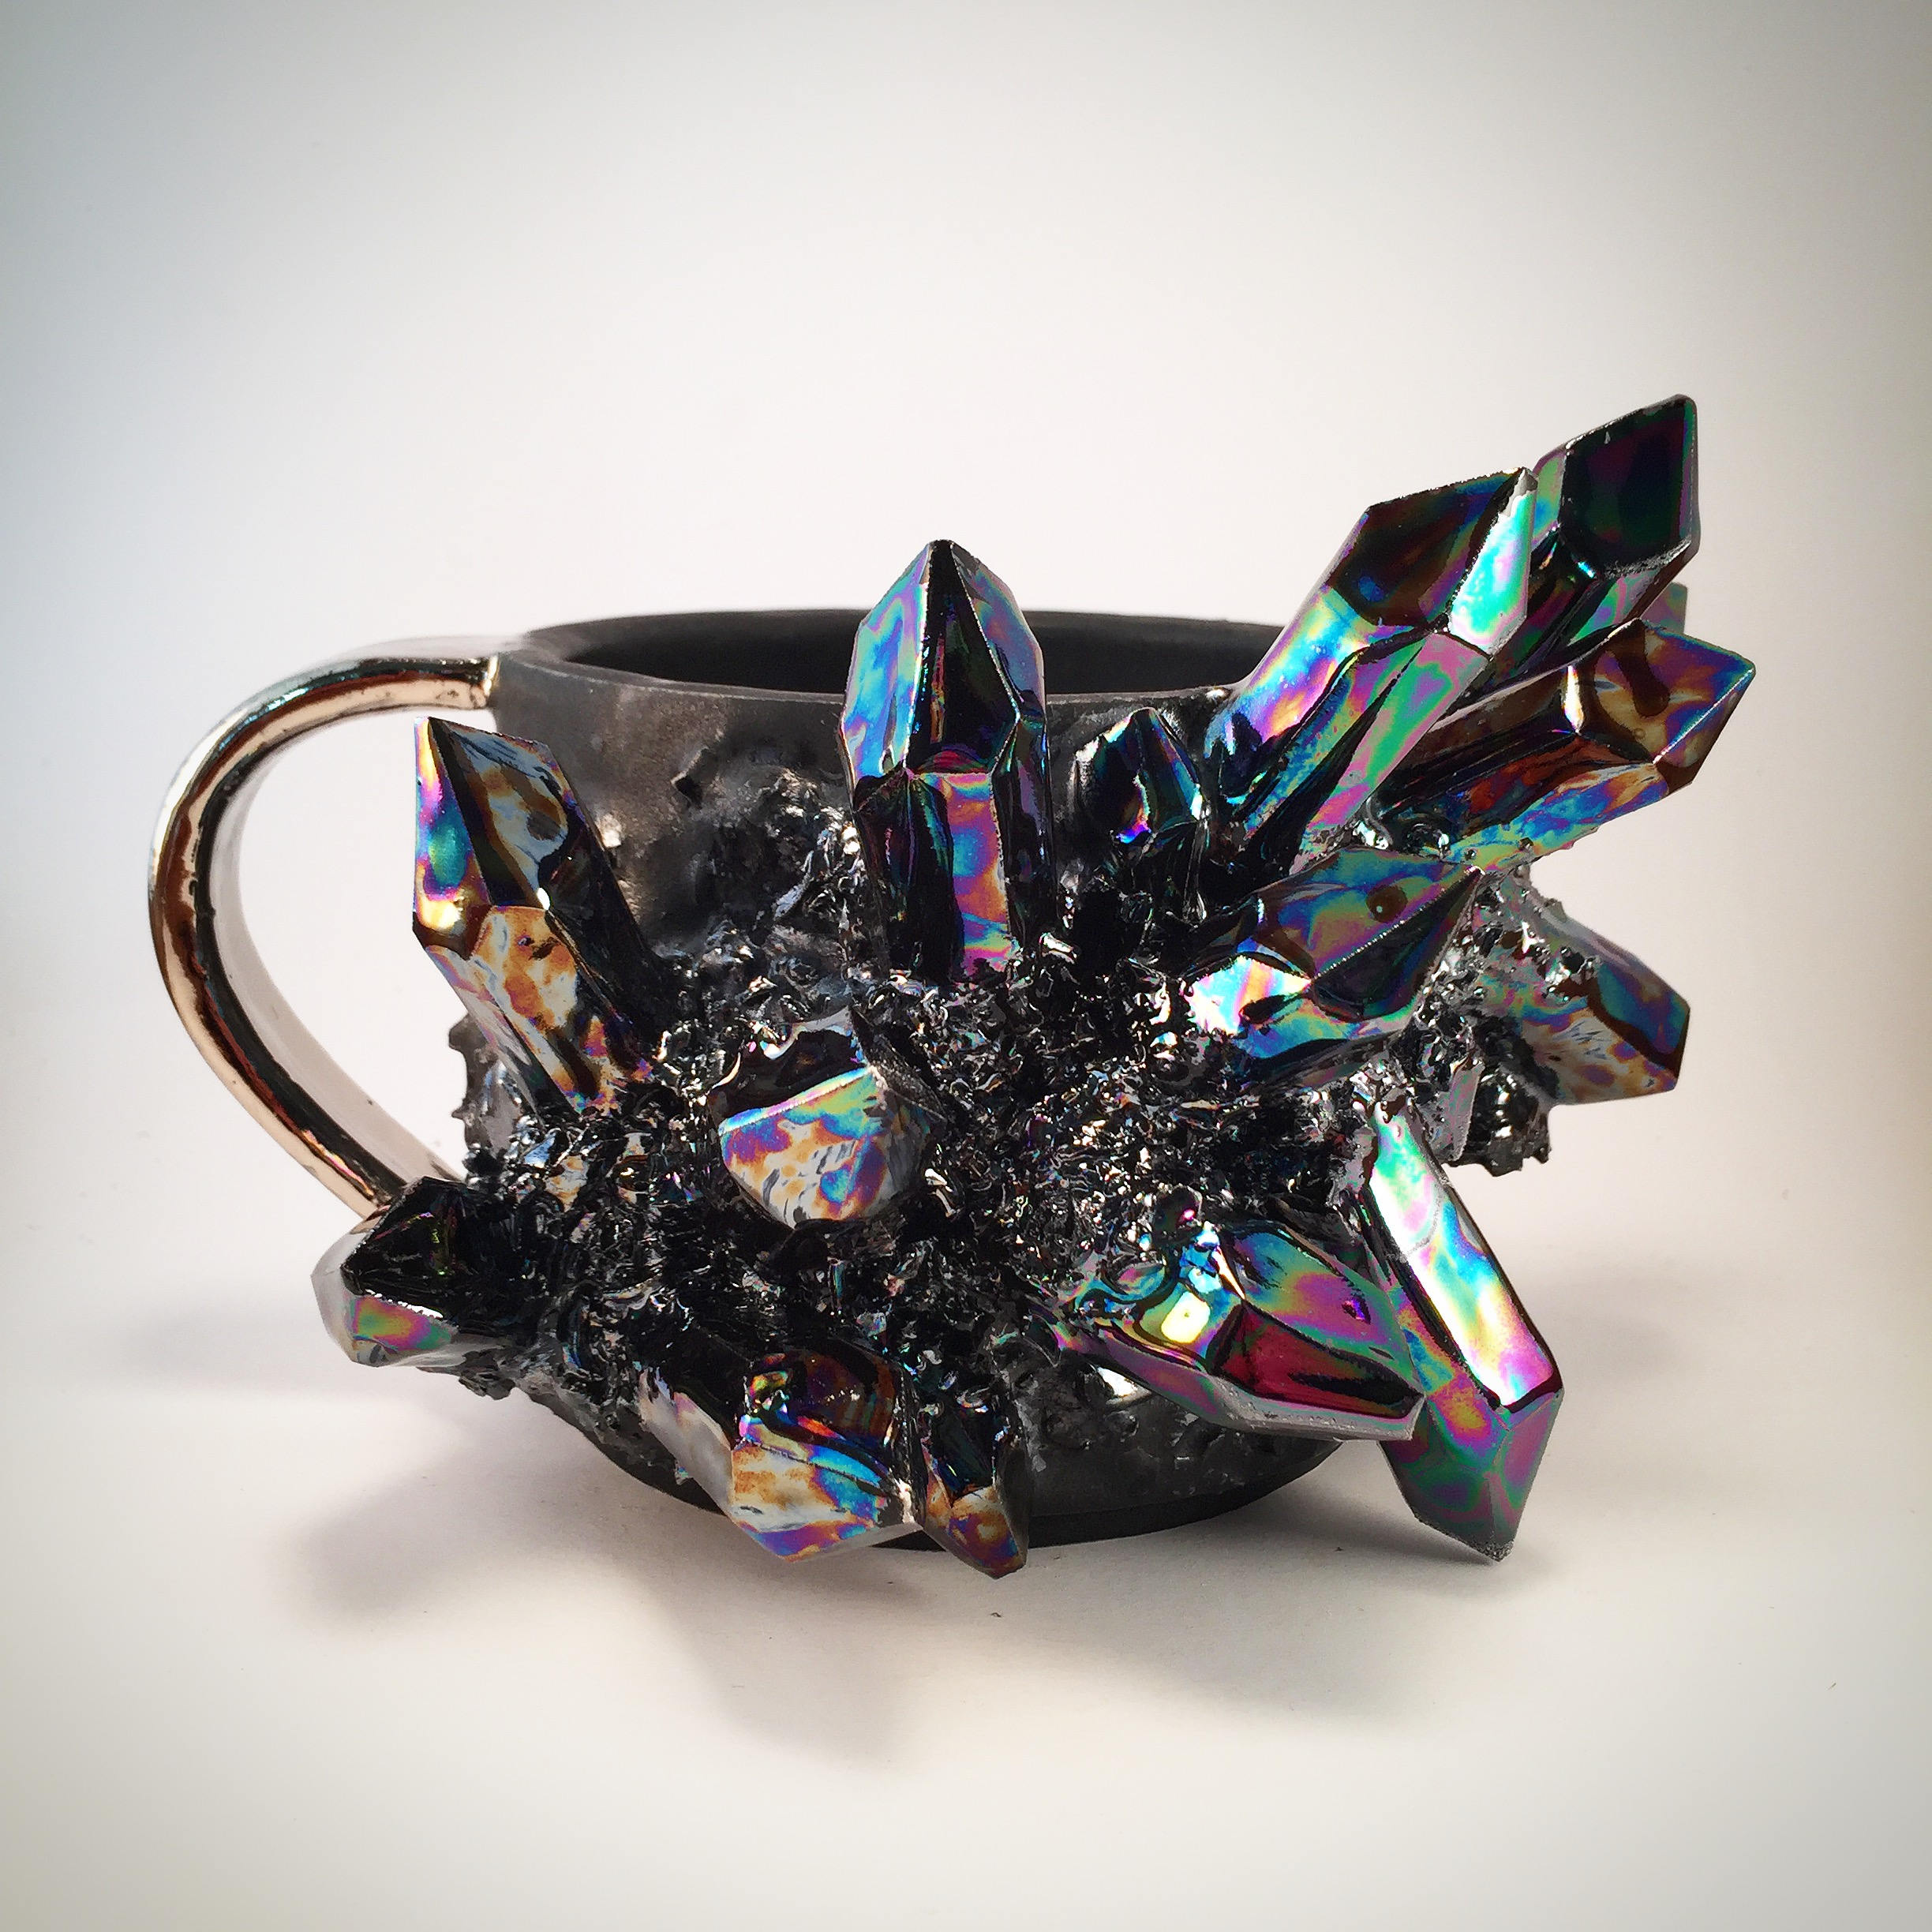 Colorful Crystal Explosions on Ceramic Vessels by Collin Lynch